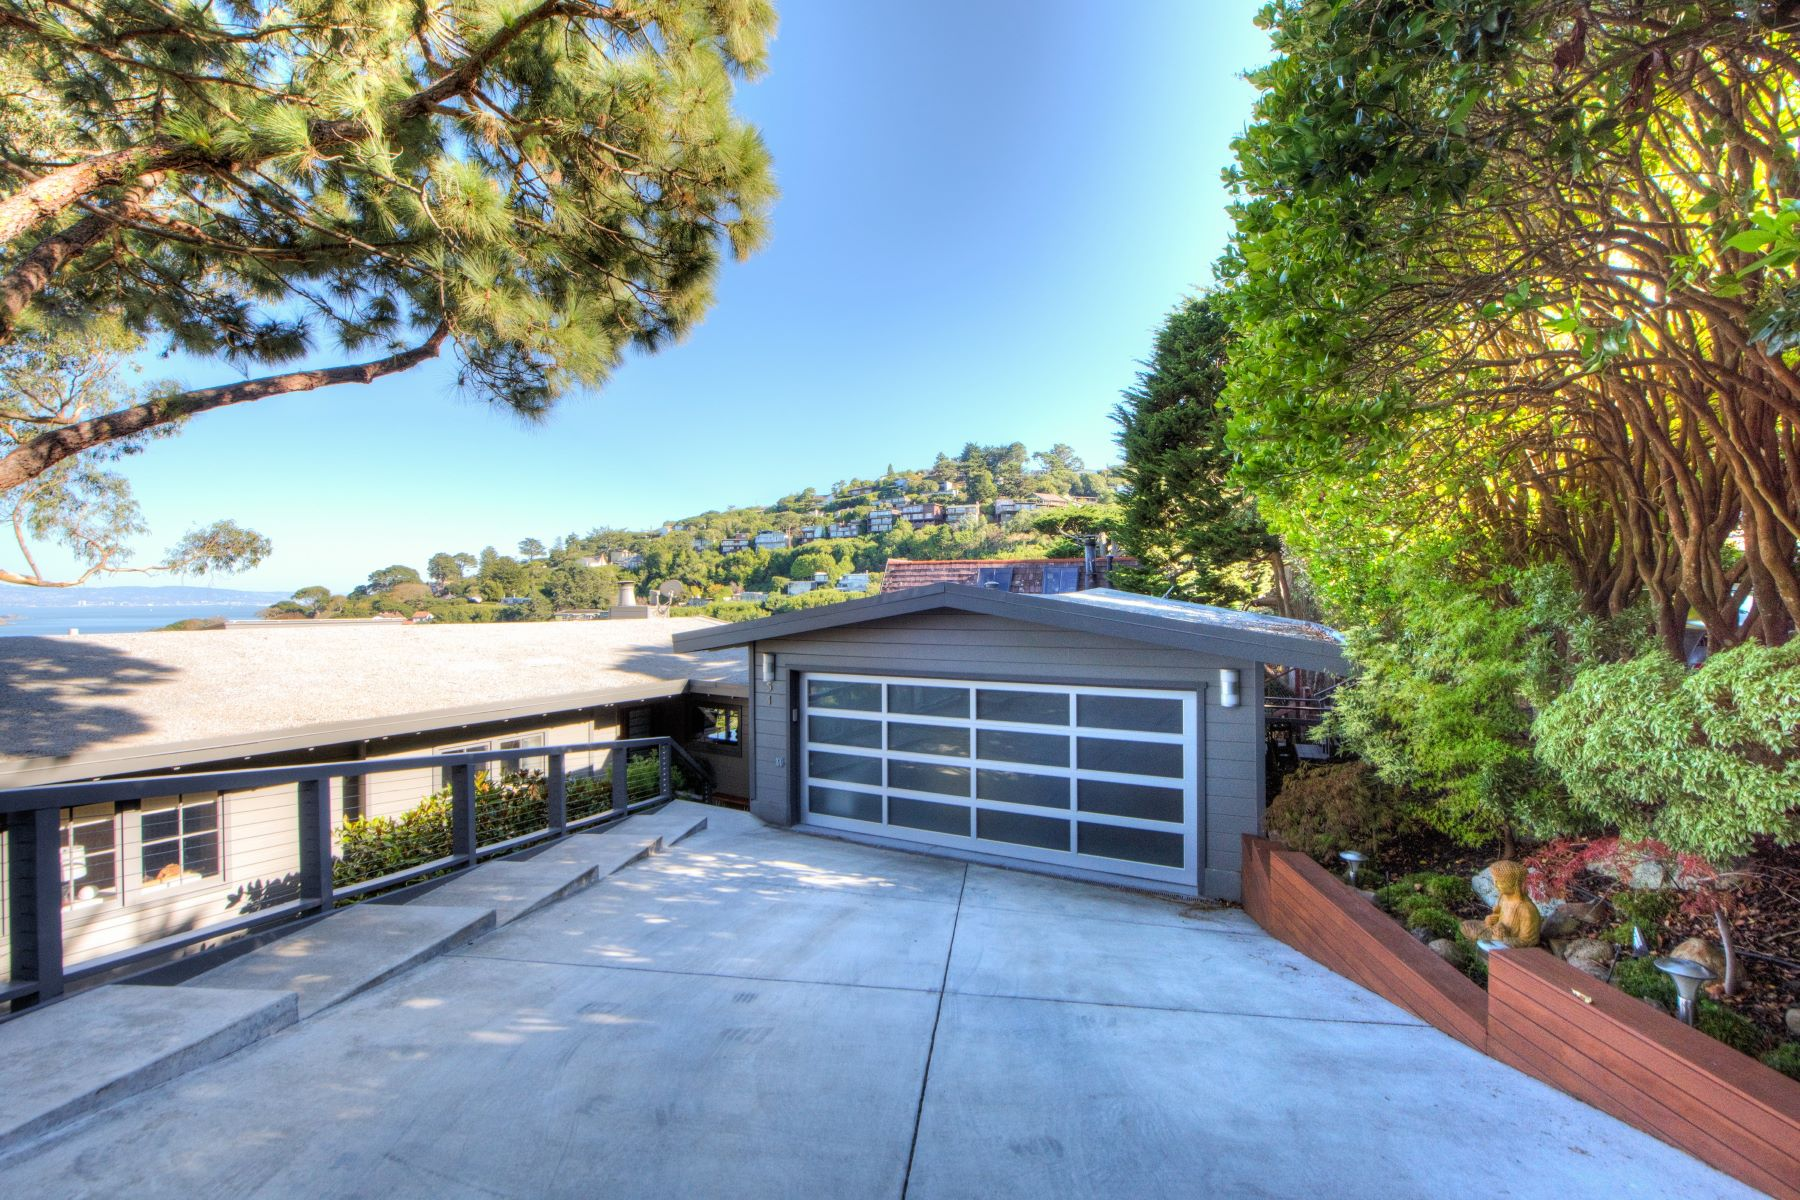 Additional photo for property listing at Contemporary with Stunning Bay Views! 51 George Lane Sausalito, California 94965 United States